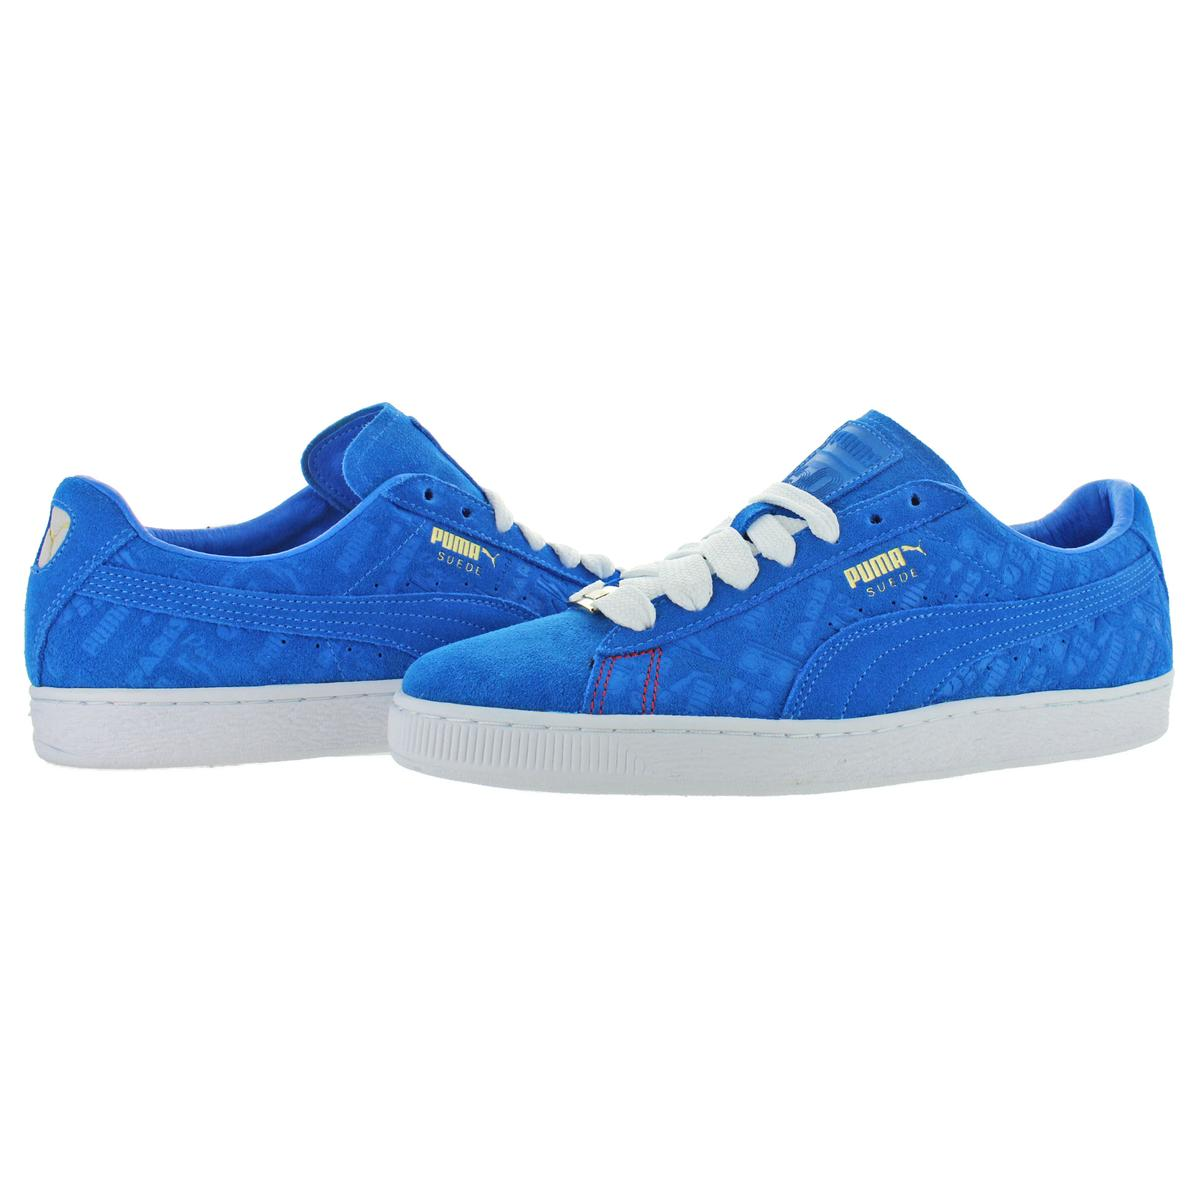 Puma-Suede-Classic-Men-039-s-Fashion-Sneakers-Shoes thumbnail 6